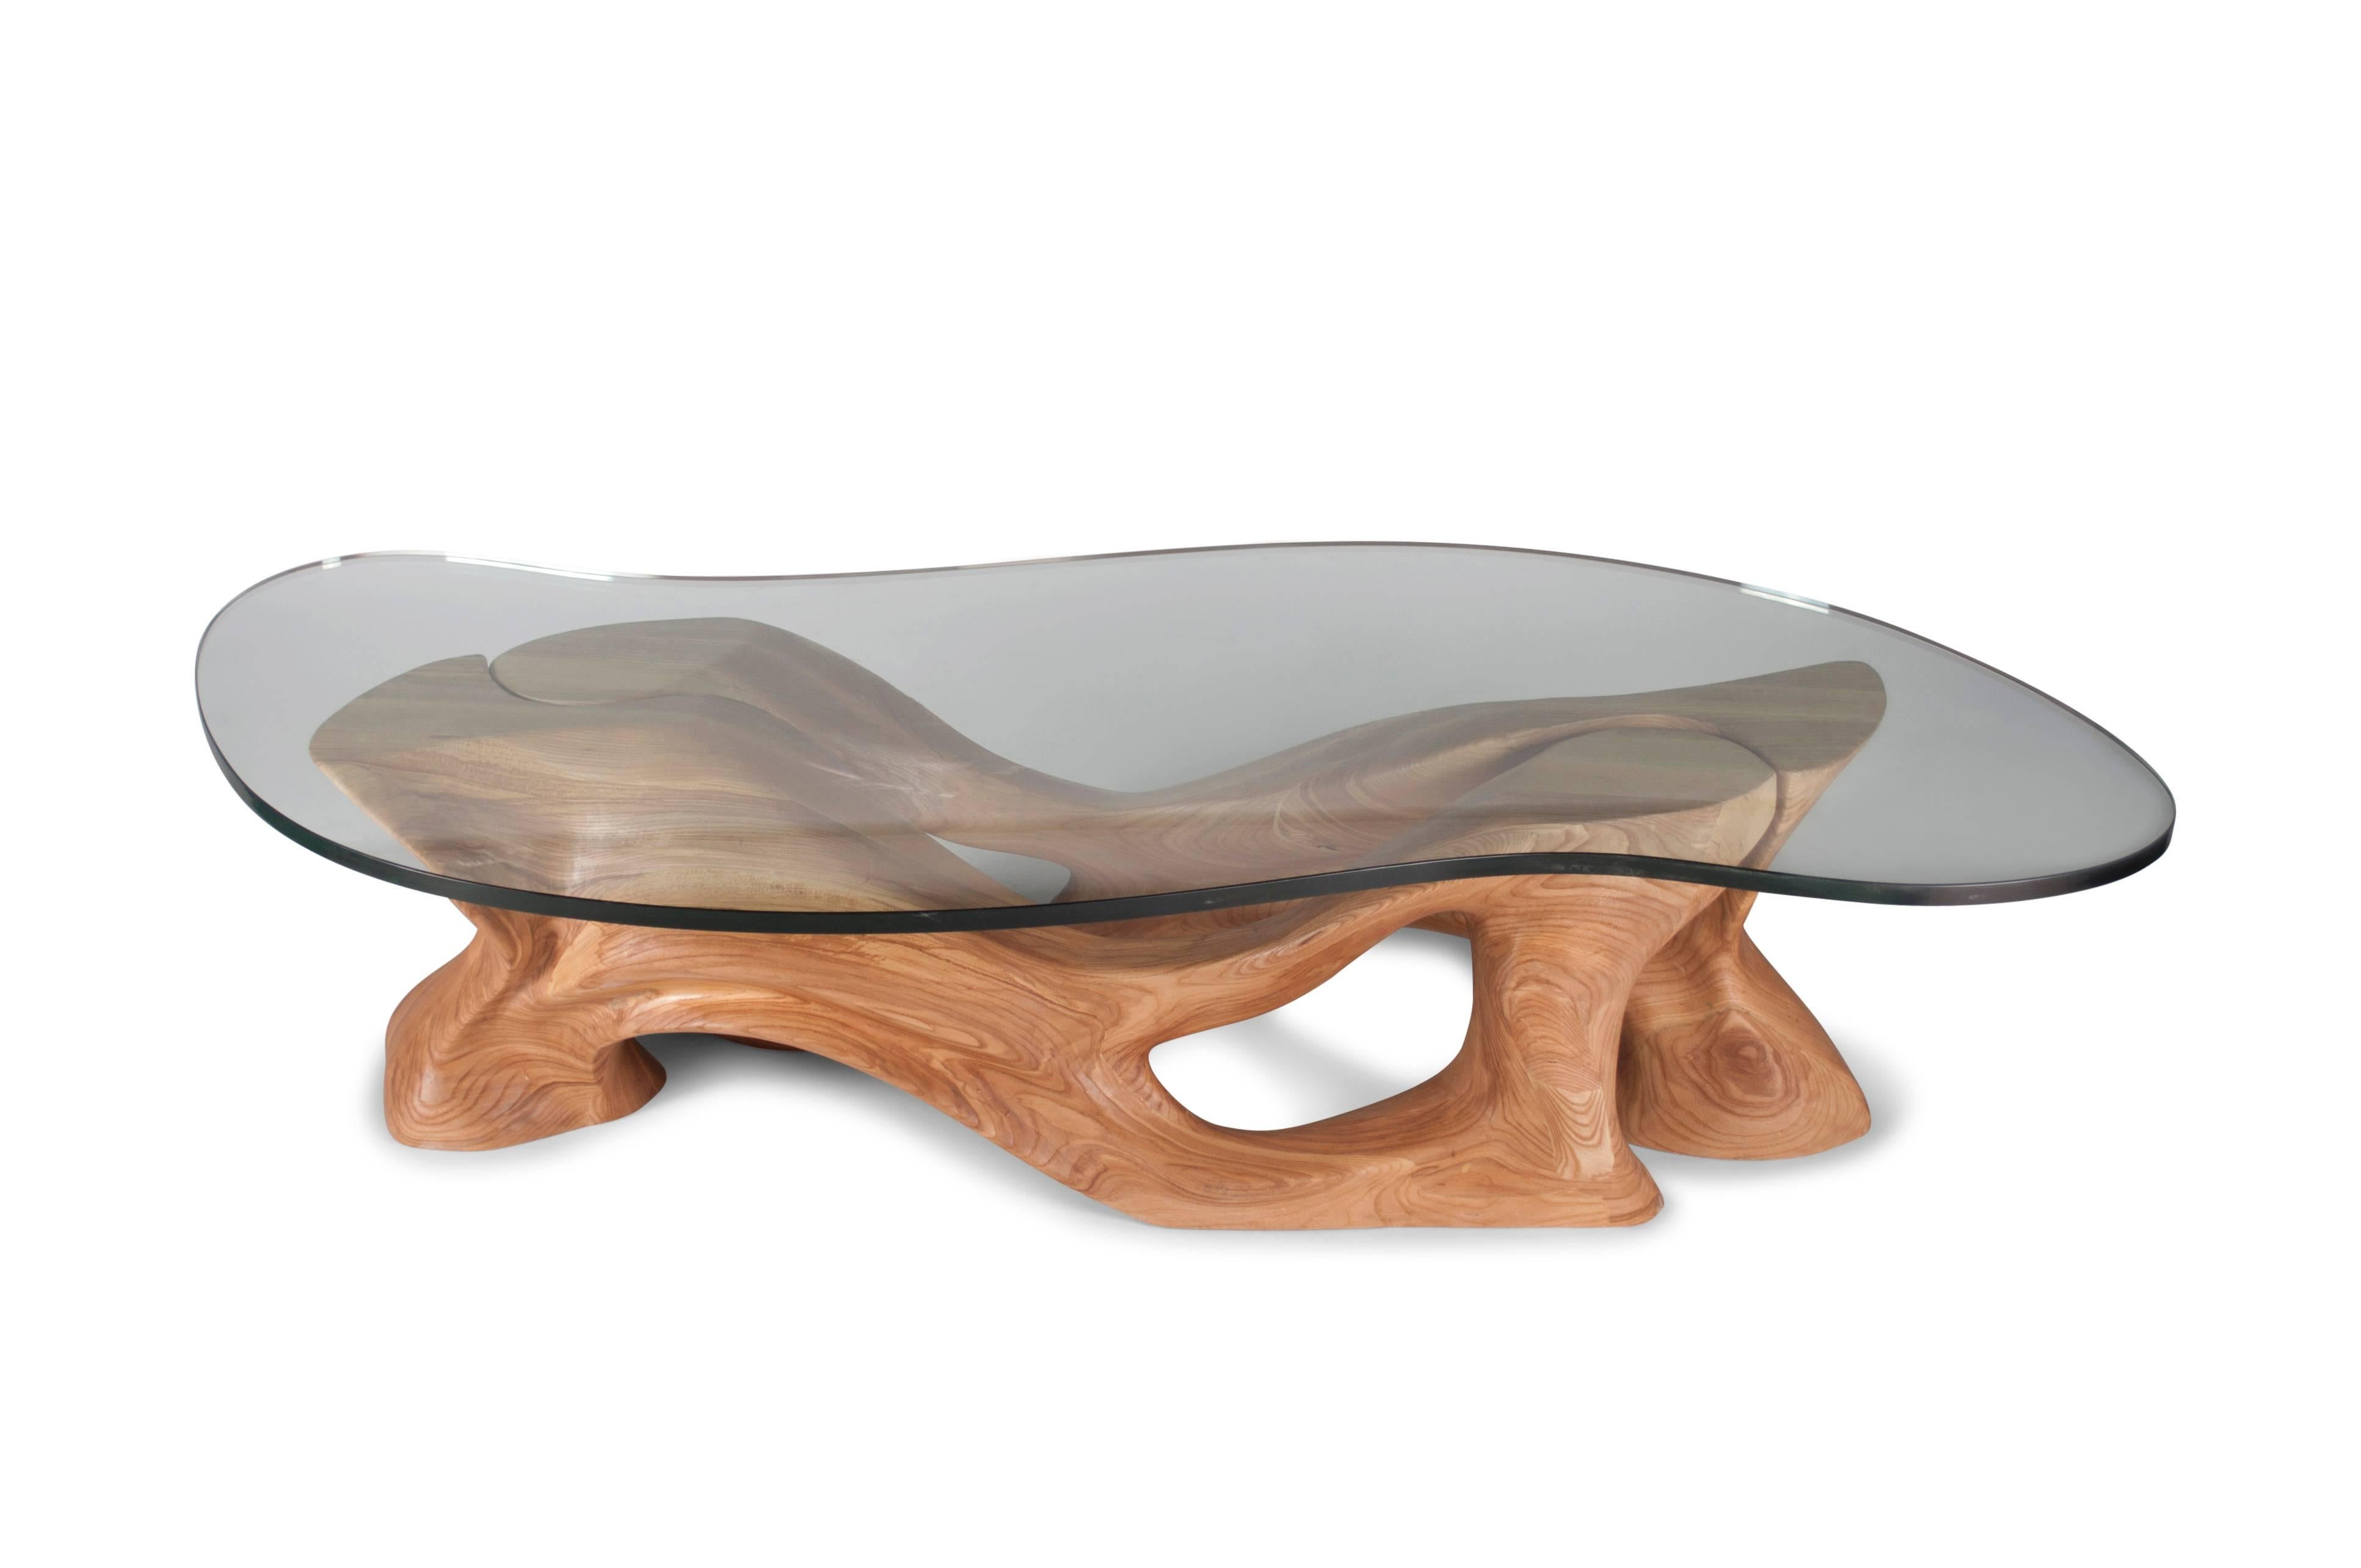 Amorph Crux Coffee Table, Solid Wood, Organic Shaped Glass